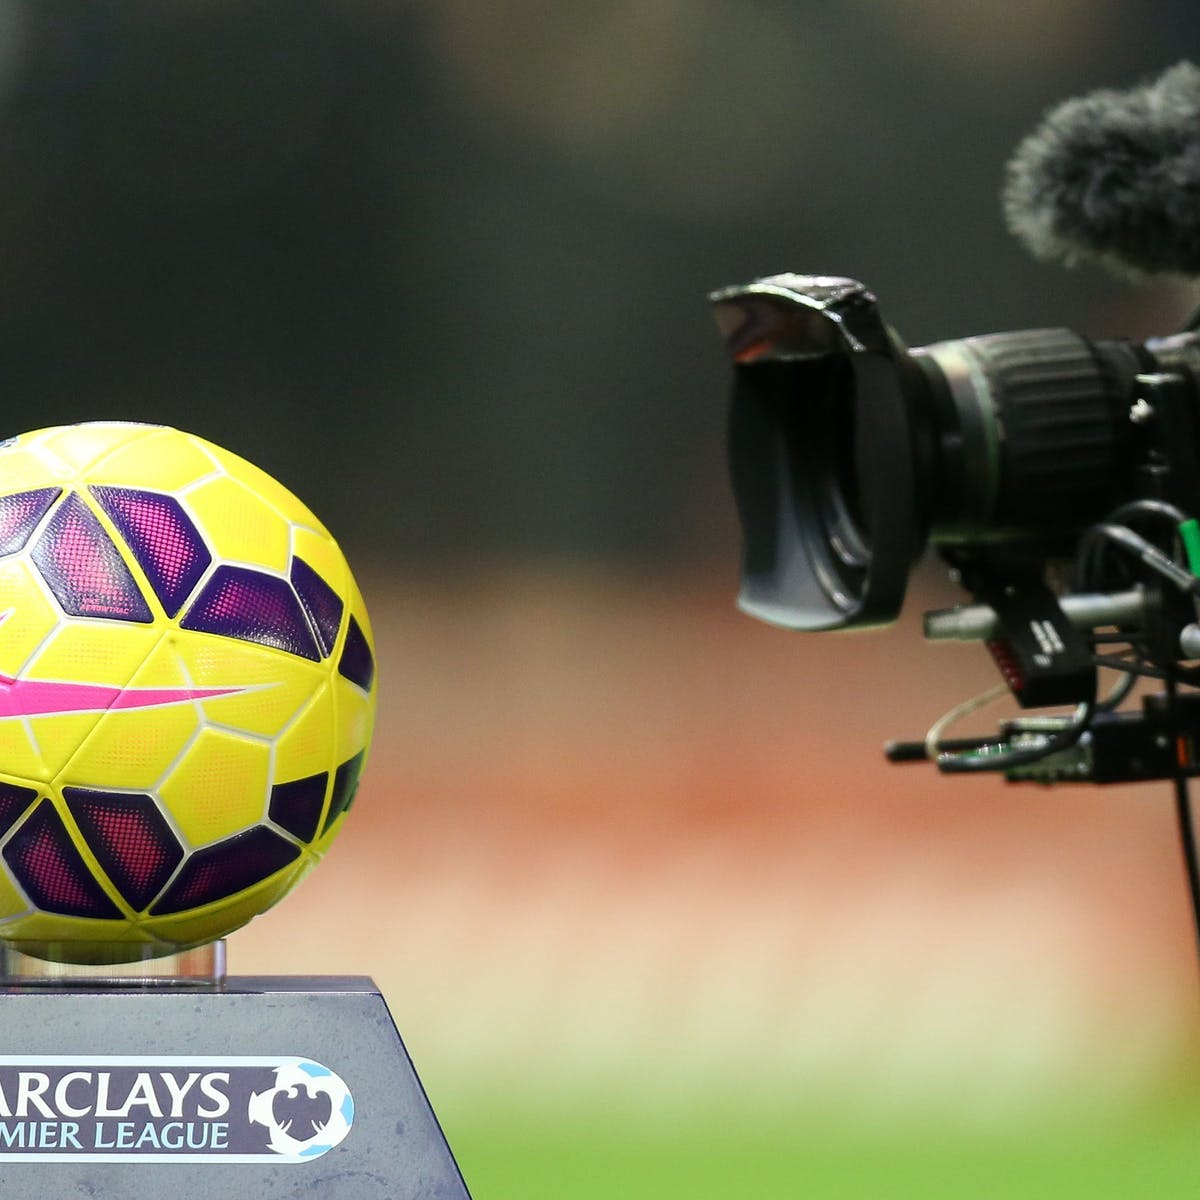 To win the war against illegal streaming sites the Premier League